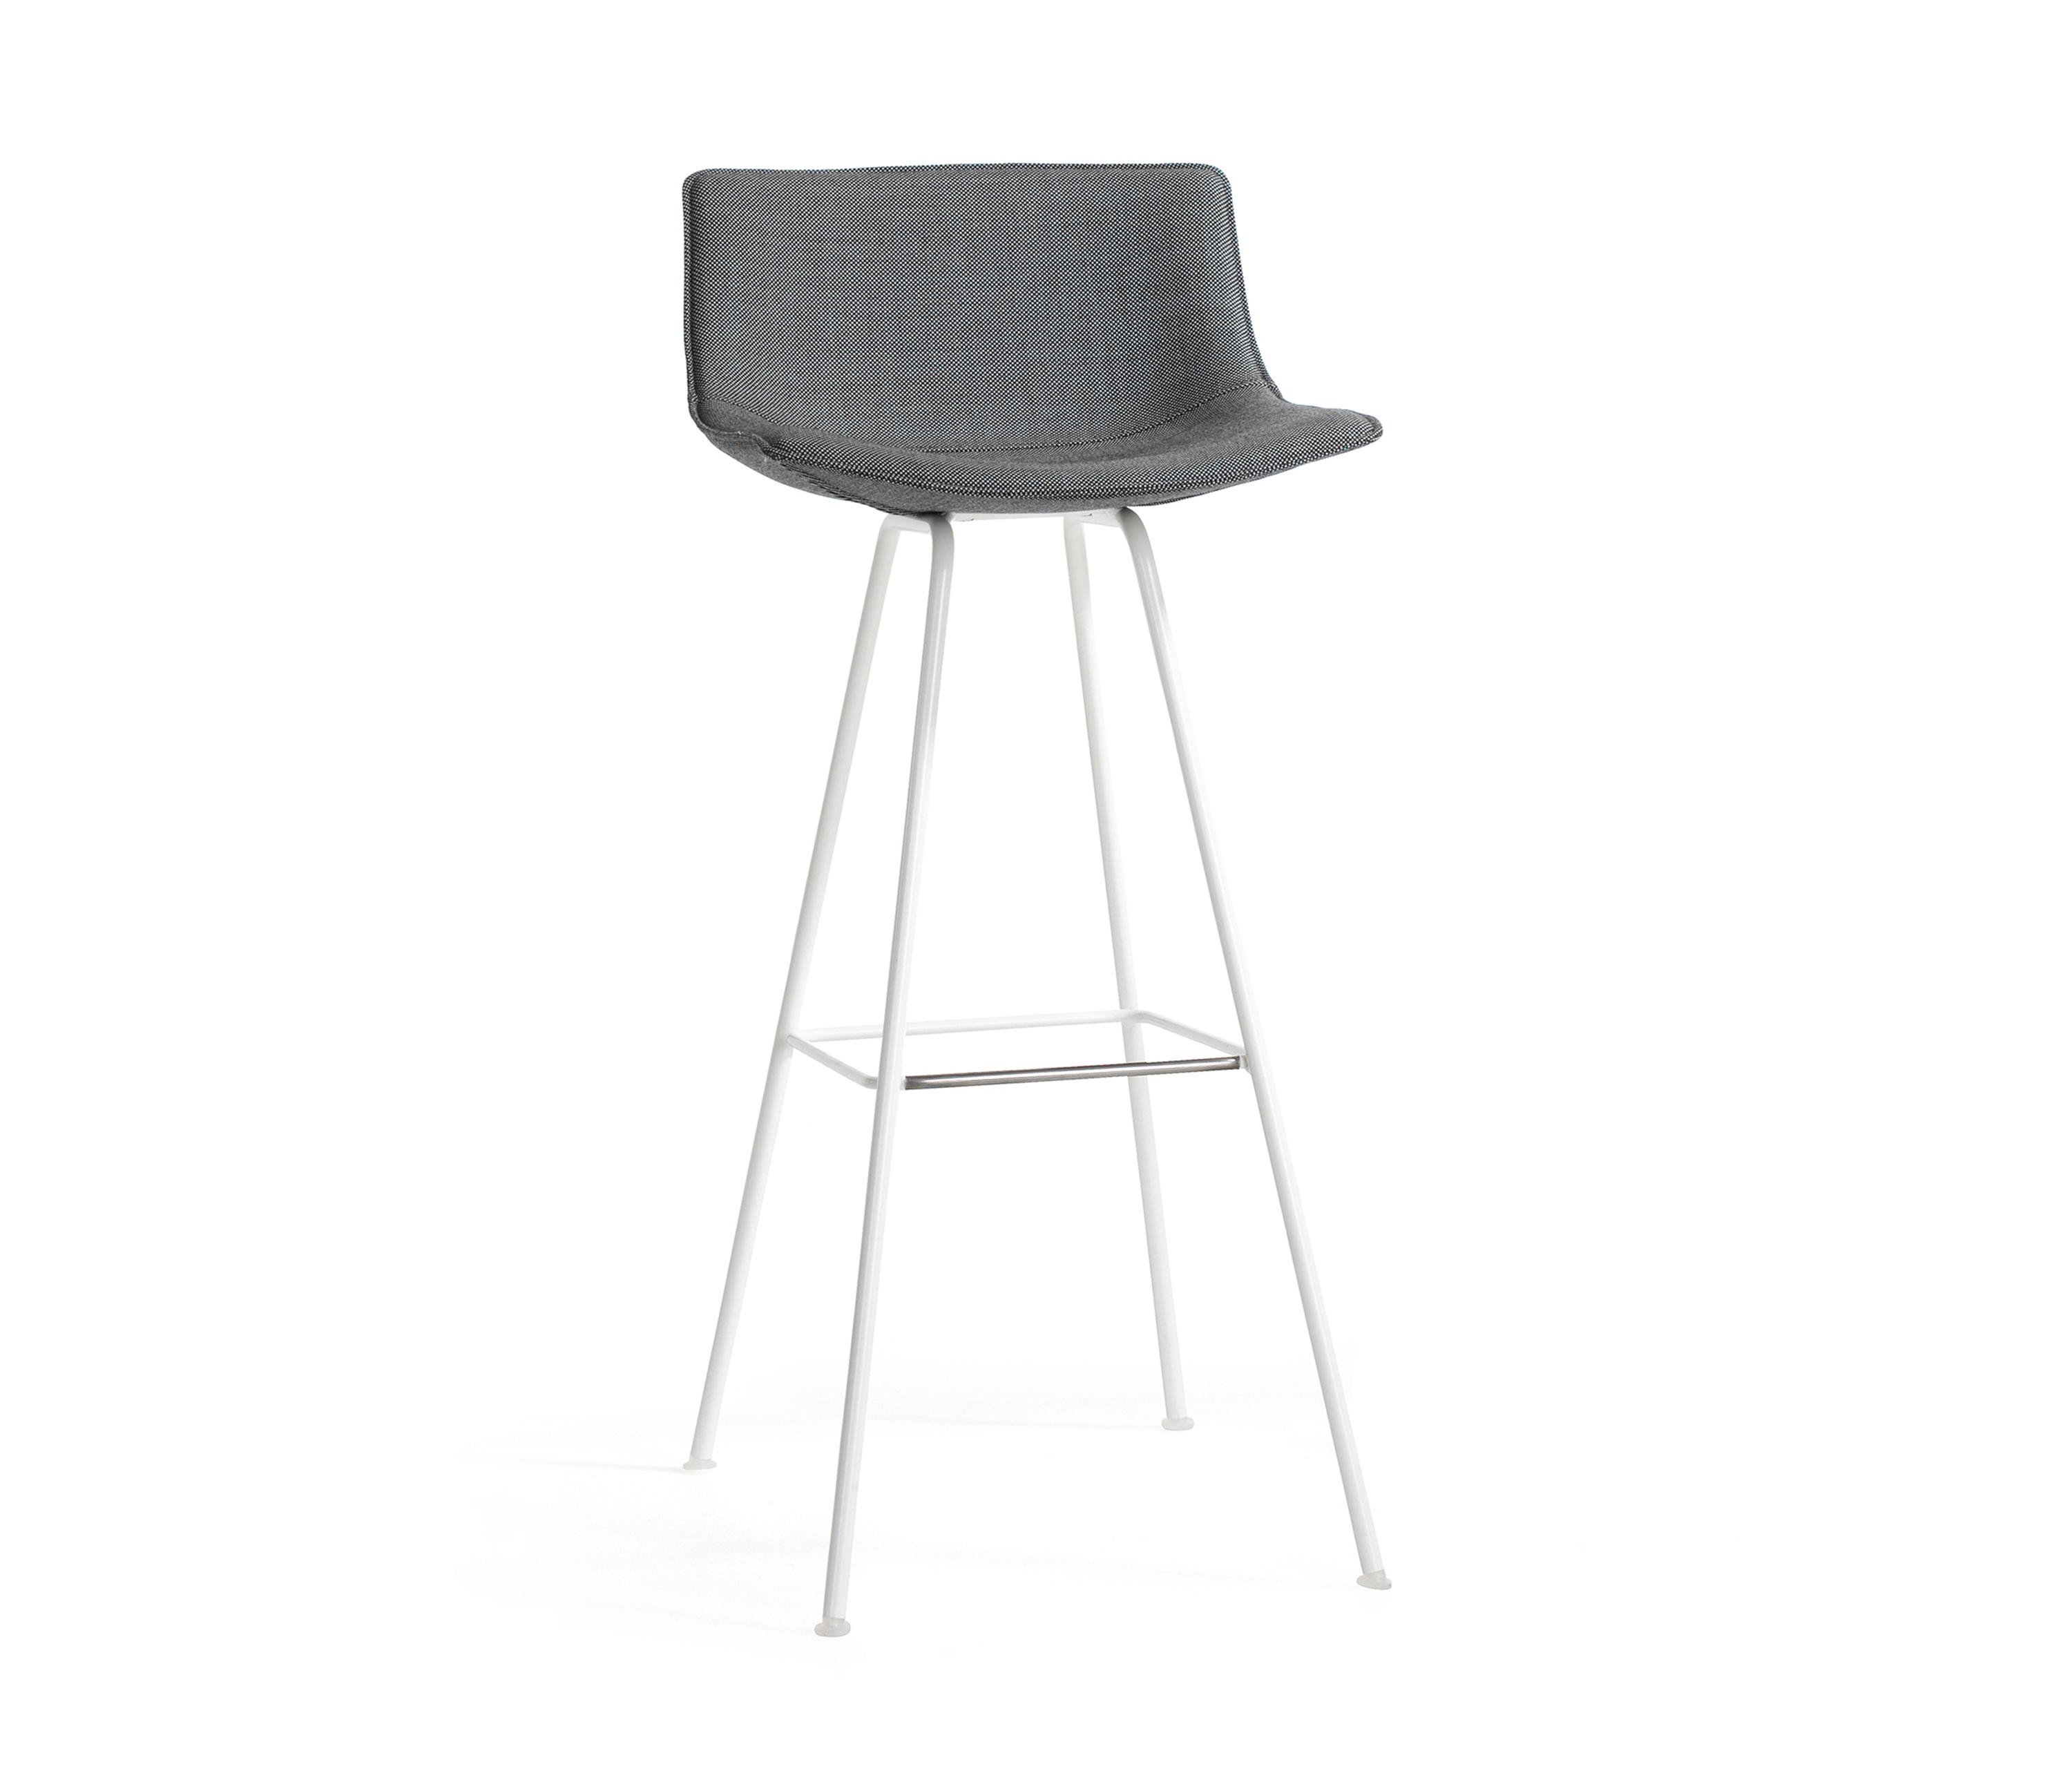 COMET SPORT BARSTOOL Counter stools from Lammhults Architonic